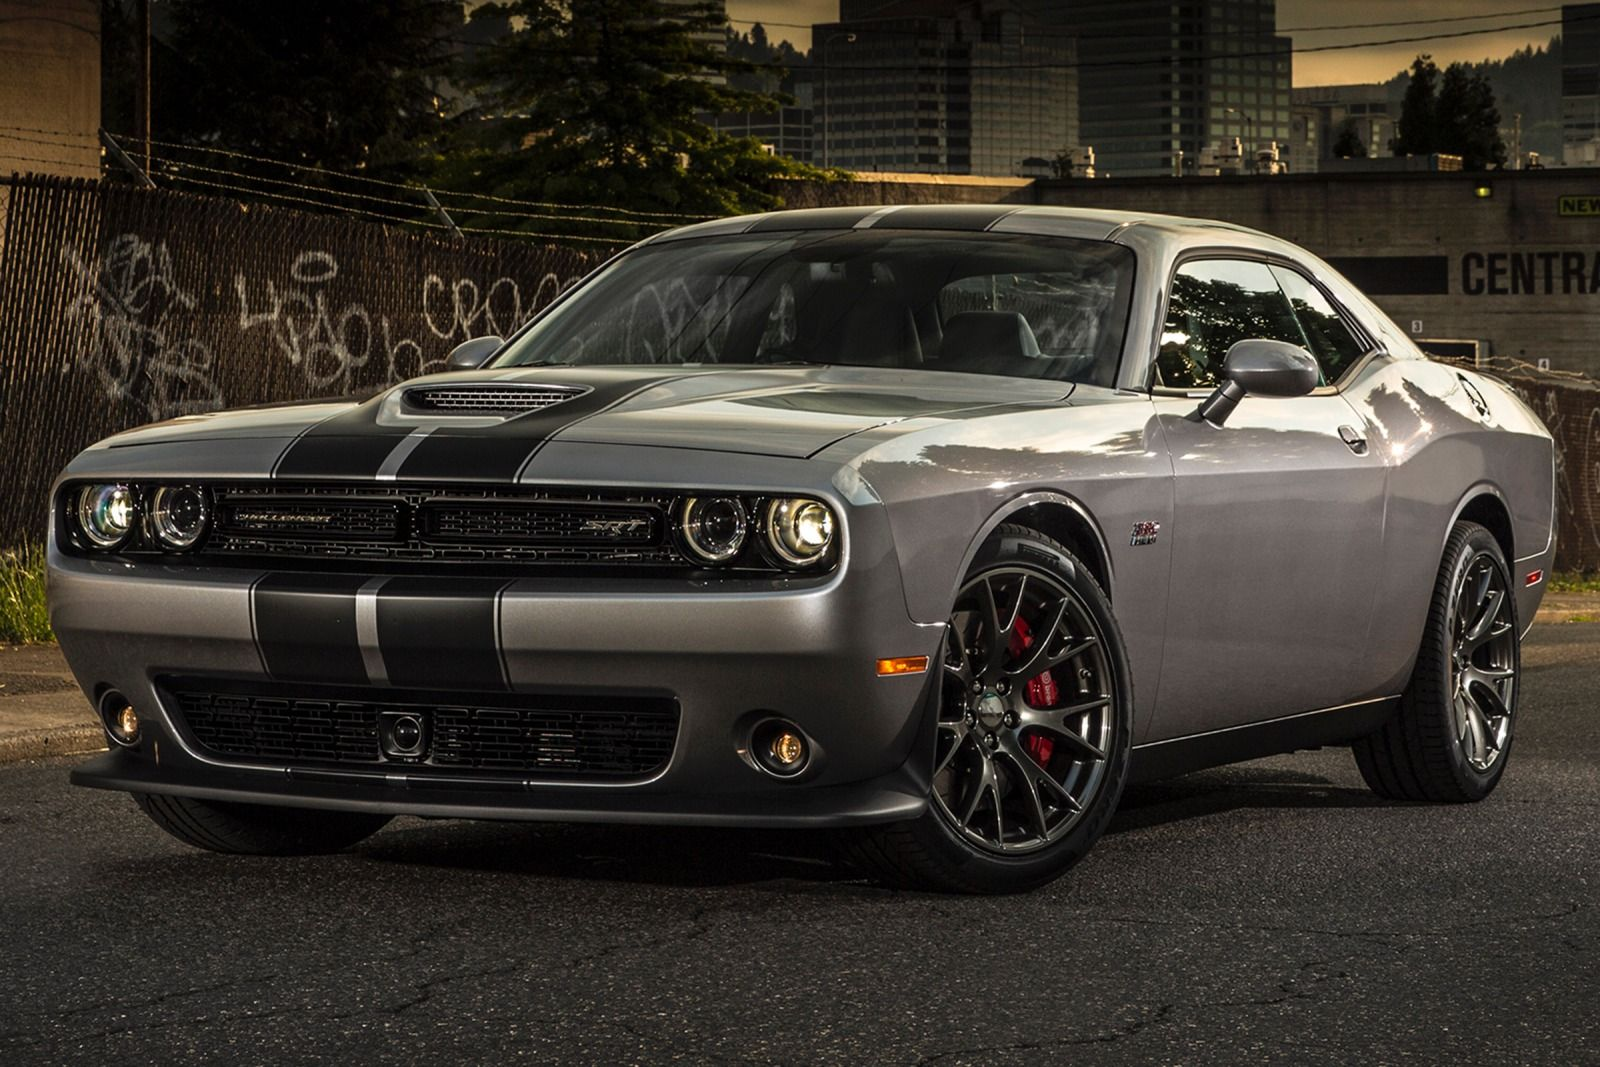 2015_Dodge_Challenger_SRT_392_2dr_Coupe_64L_8cyl_6M_3846641_1420575134726